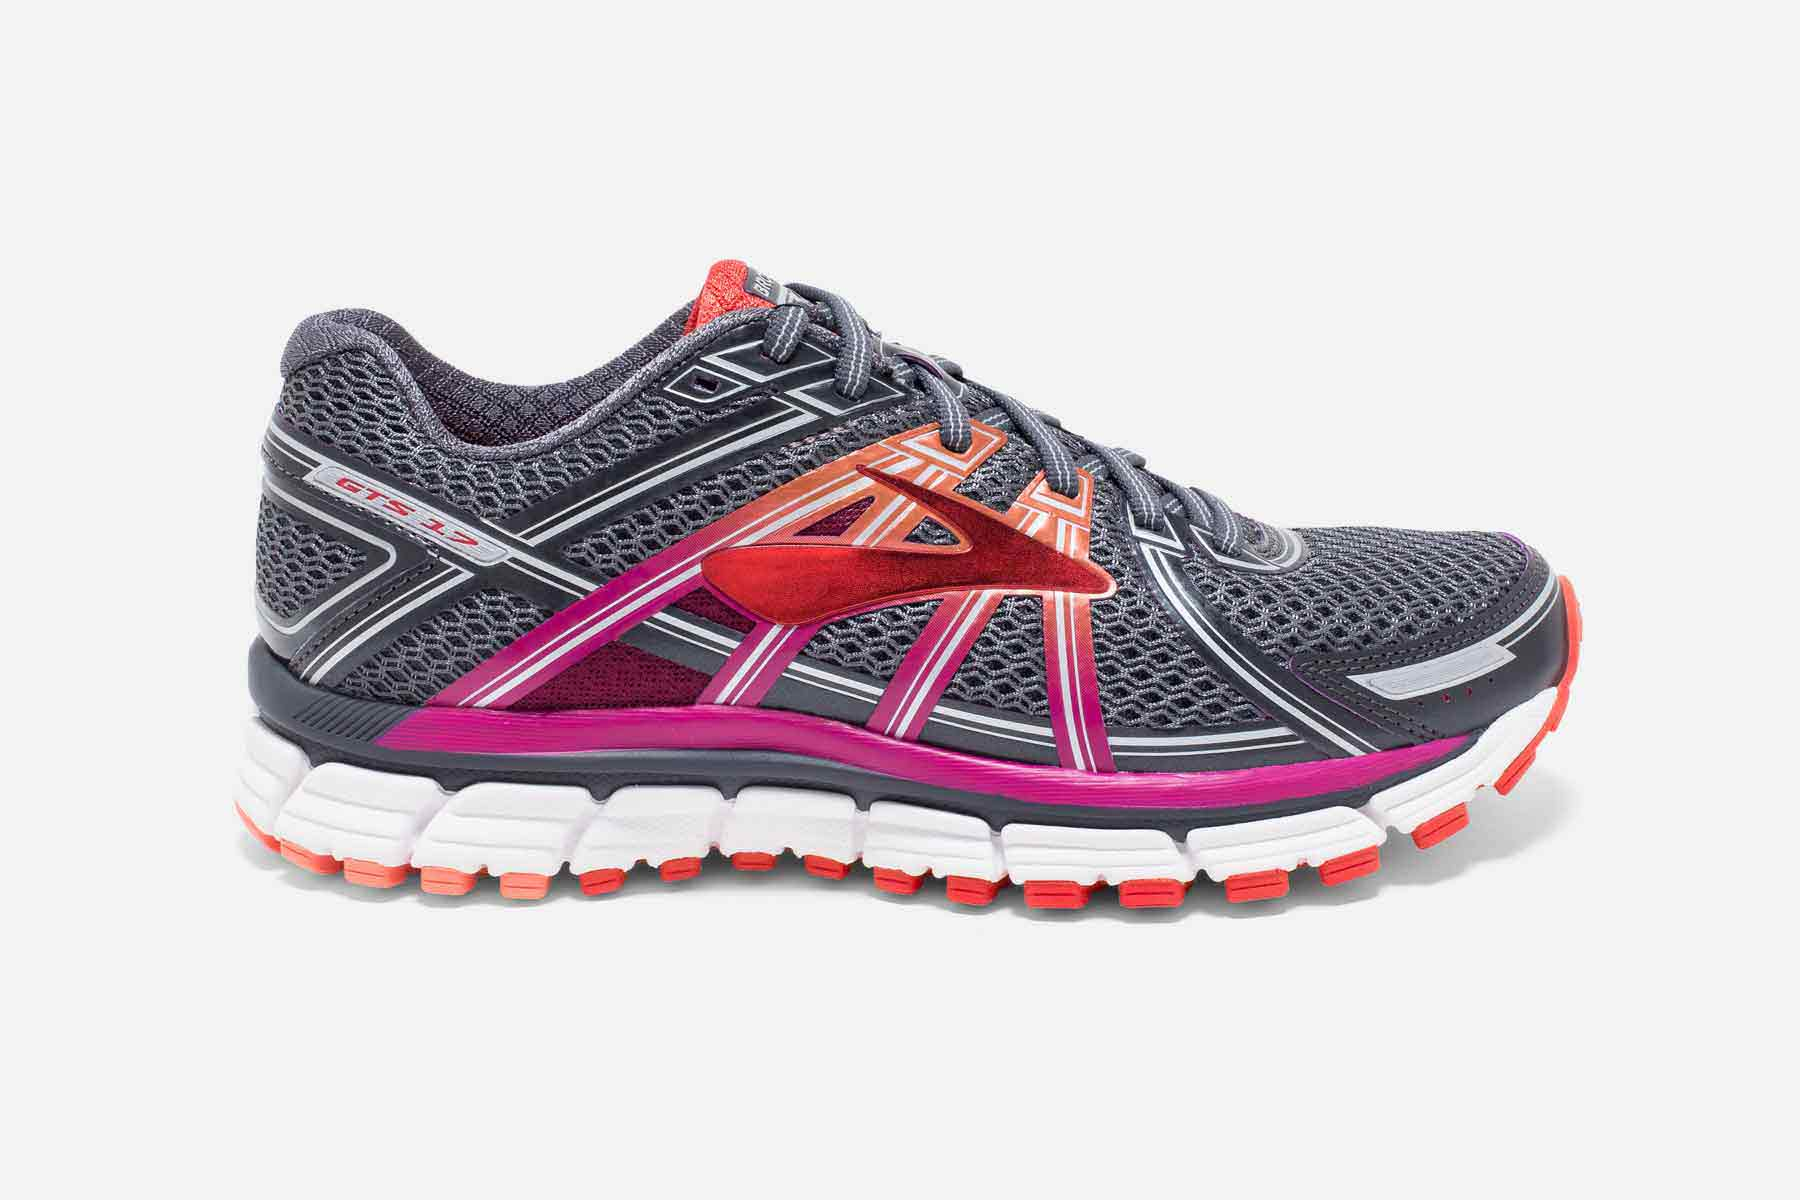 Brooks Shoe Sizes For Adrenaline Gts